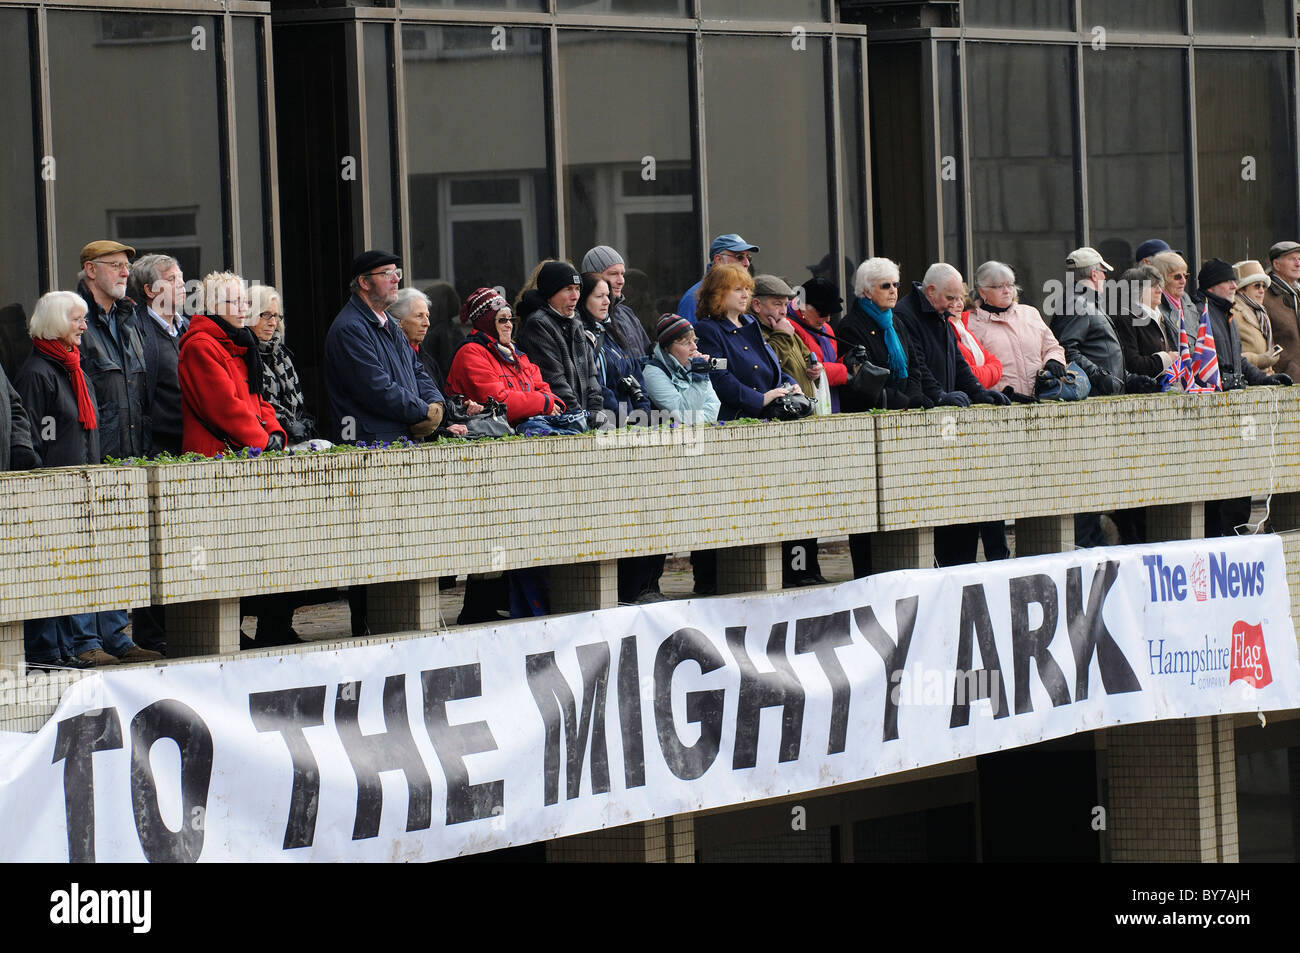 Spectators at the decommissioning parade and celebrations of HMS Ark Royal in Guildhall Square Portsmouth England - Stock Image